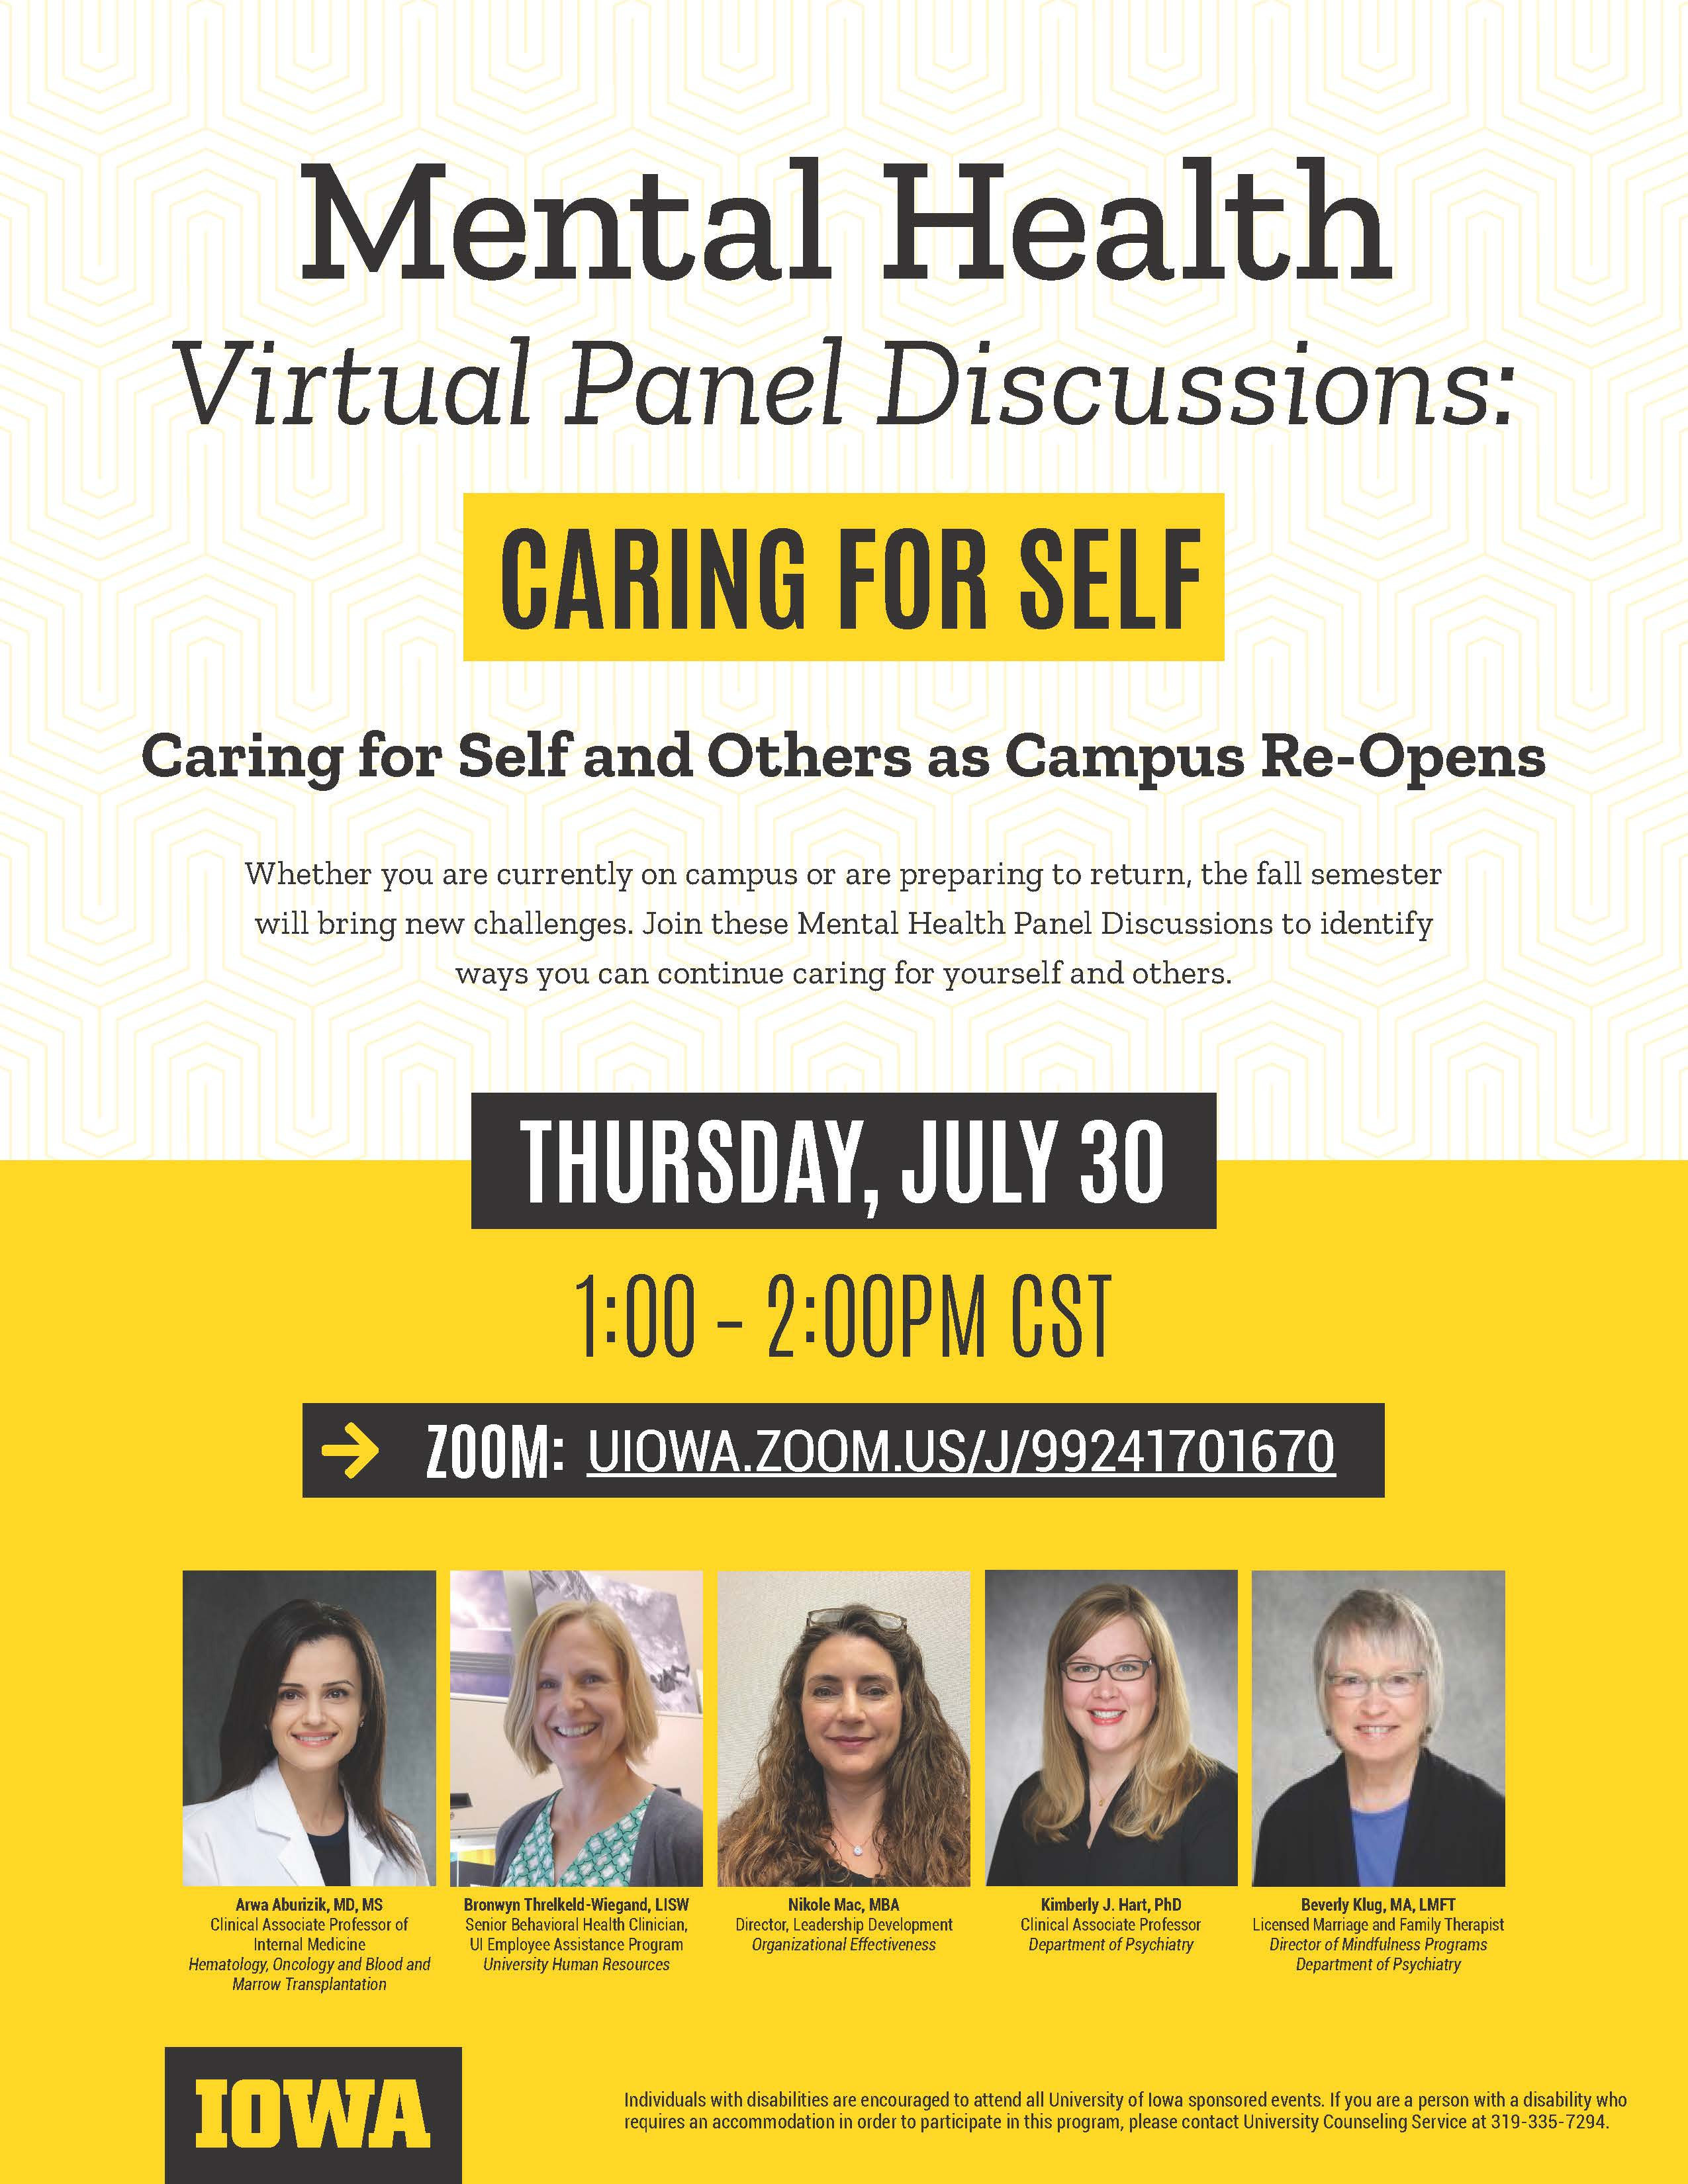 Mental Health Virtual Panel Discussion Caring For Self